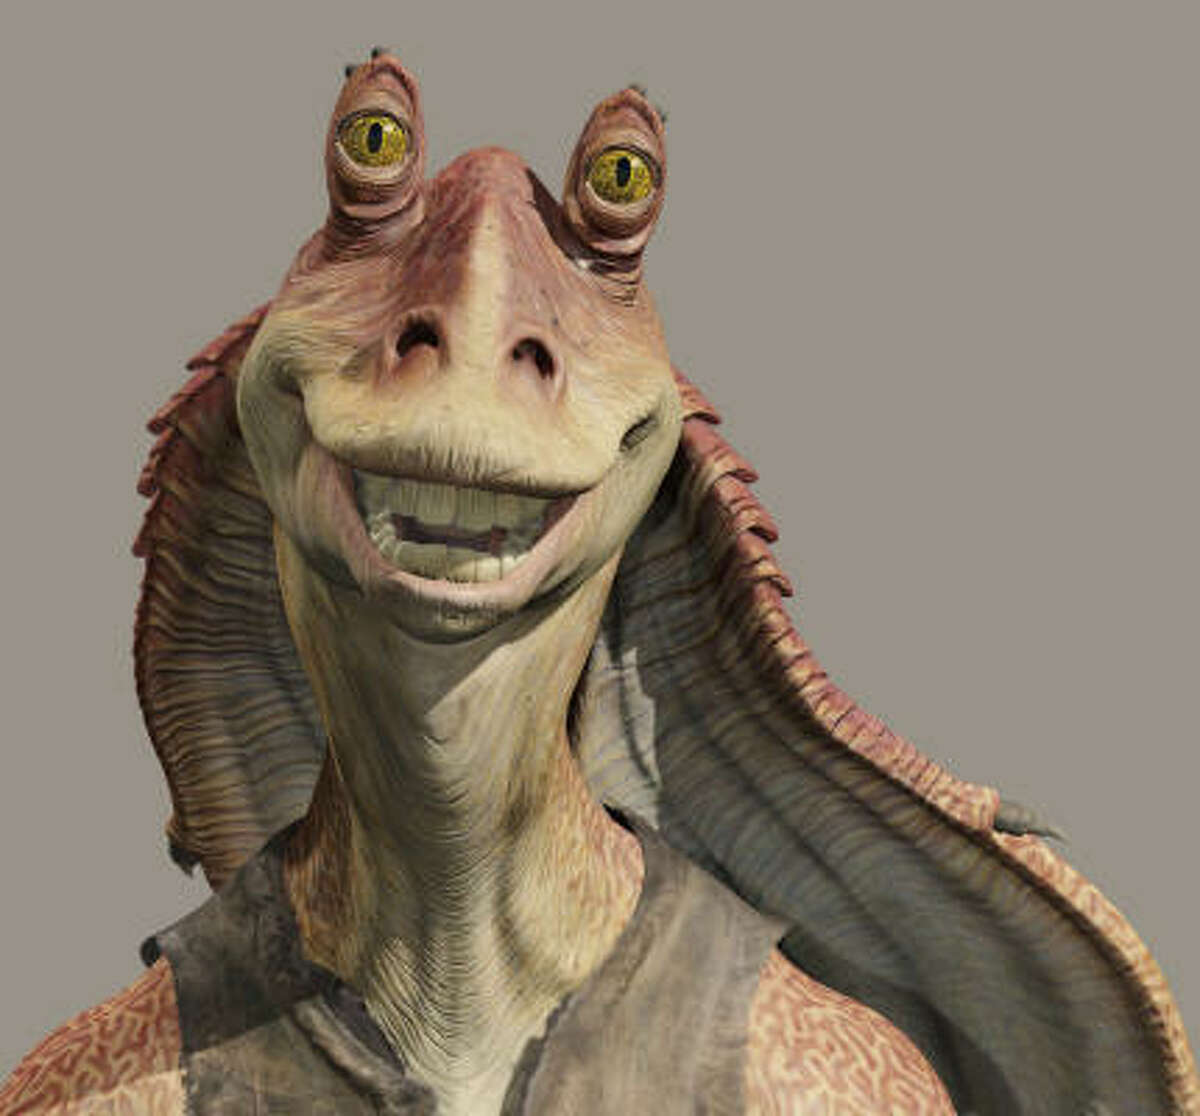 """Jar Jar Binks Ugh. The Gungan from """"Star Wars I:The Phantom Menace"""" turned off many fans with his apparent harking back to the ugly stereotypes of black minstrelsy, which George Lucas denied. But c'mon."""